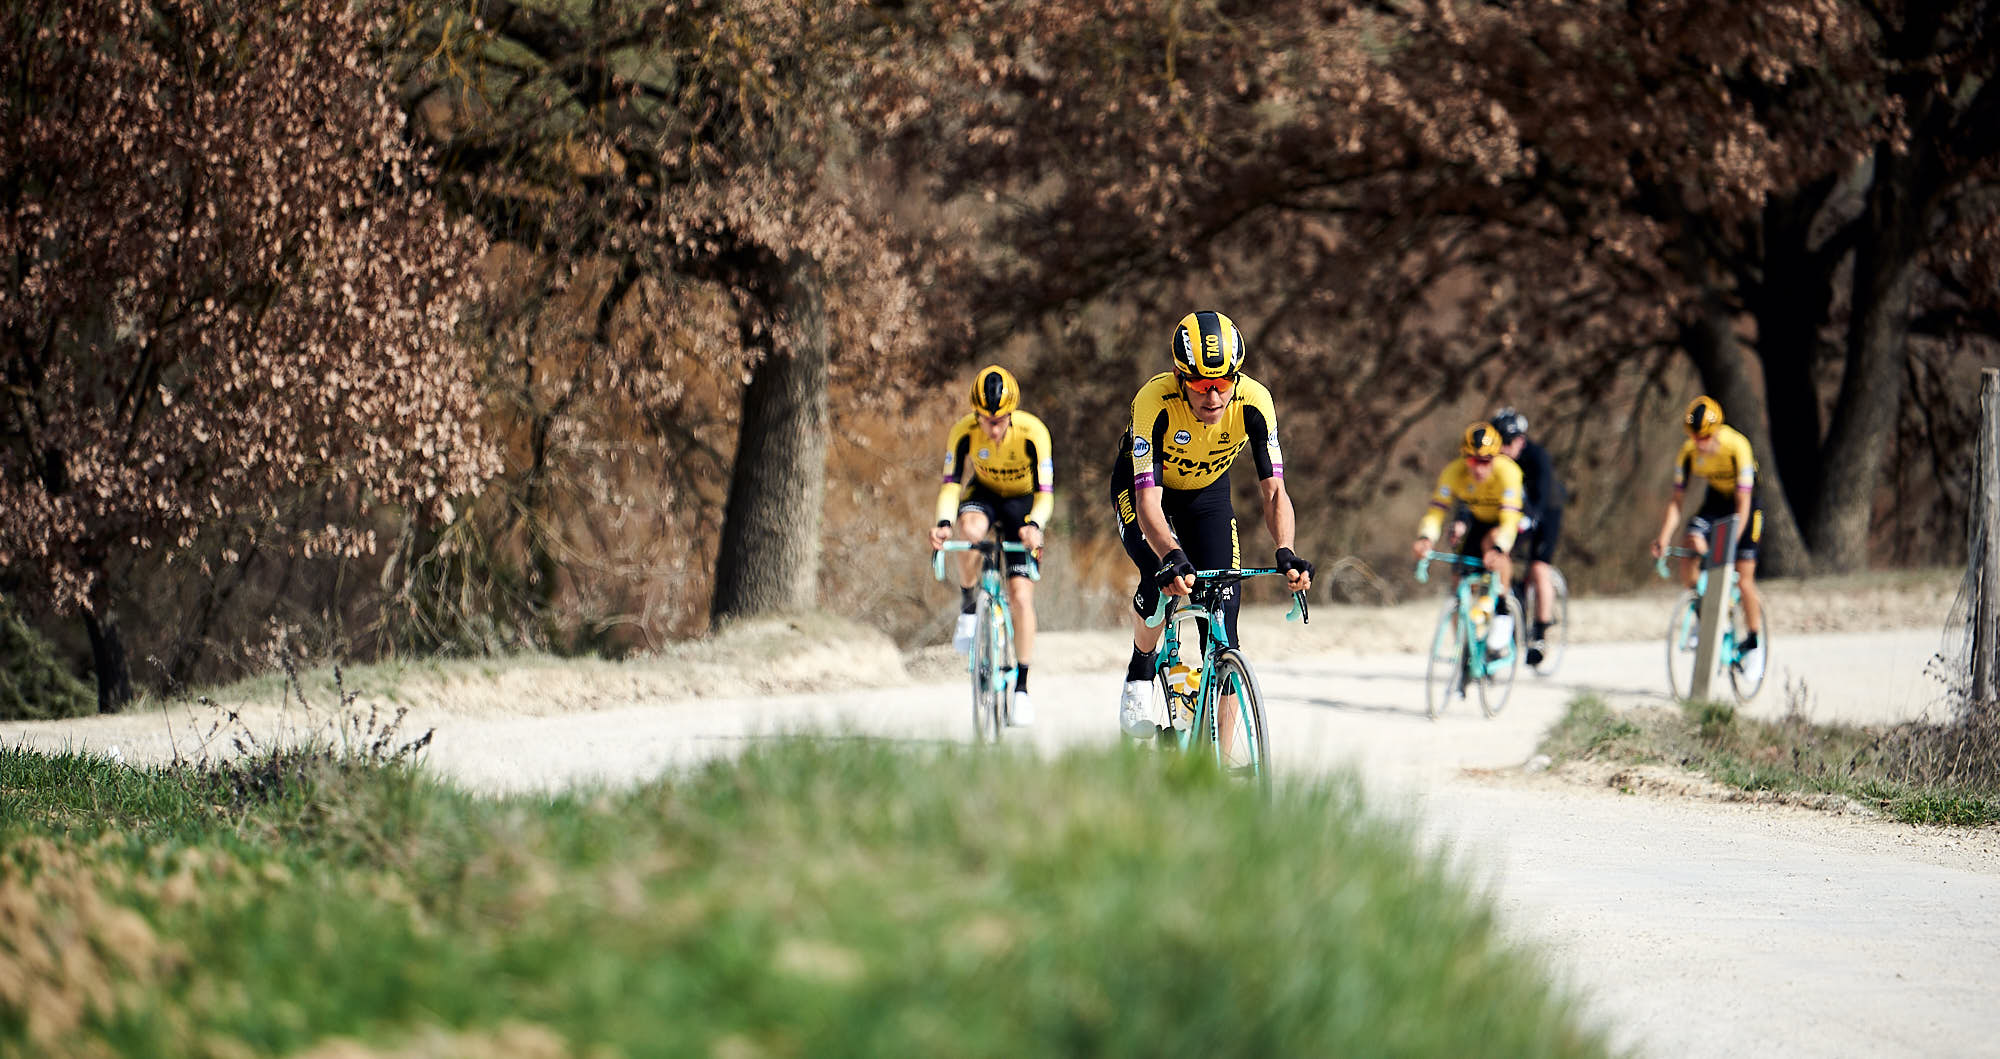 Jumbo-Visma cyclists riding the Strade Bianche, or white roads